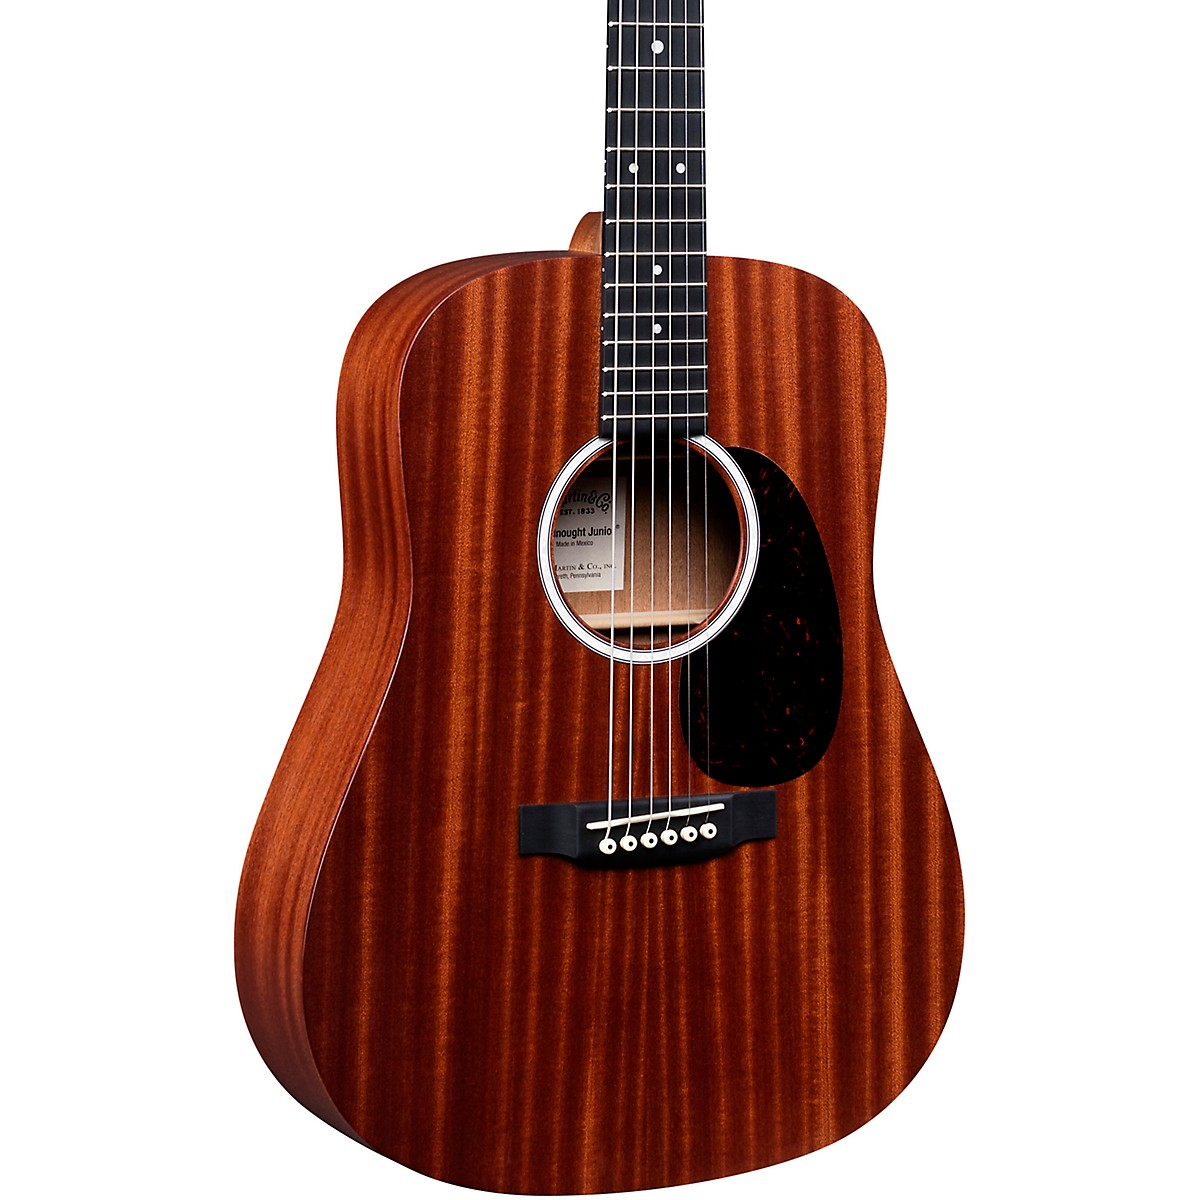 Martin DJr-10E Sapele Top Dreadnought Junior Acoustic-Electric Guitar